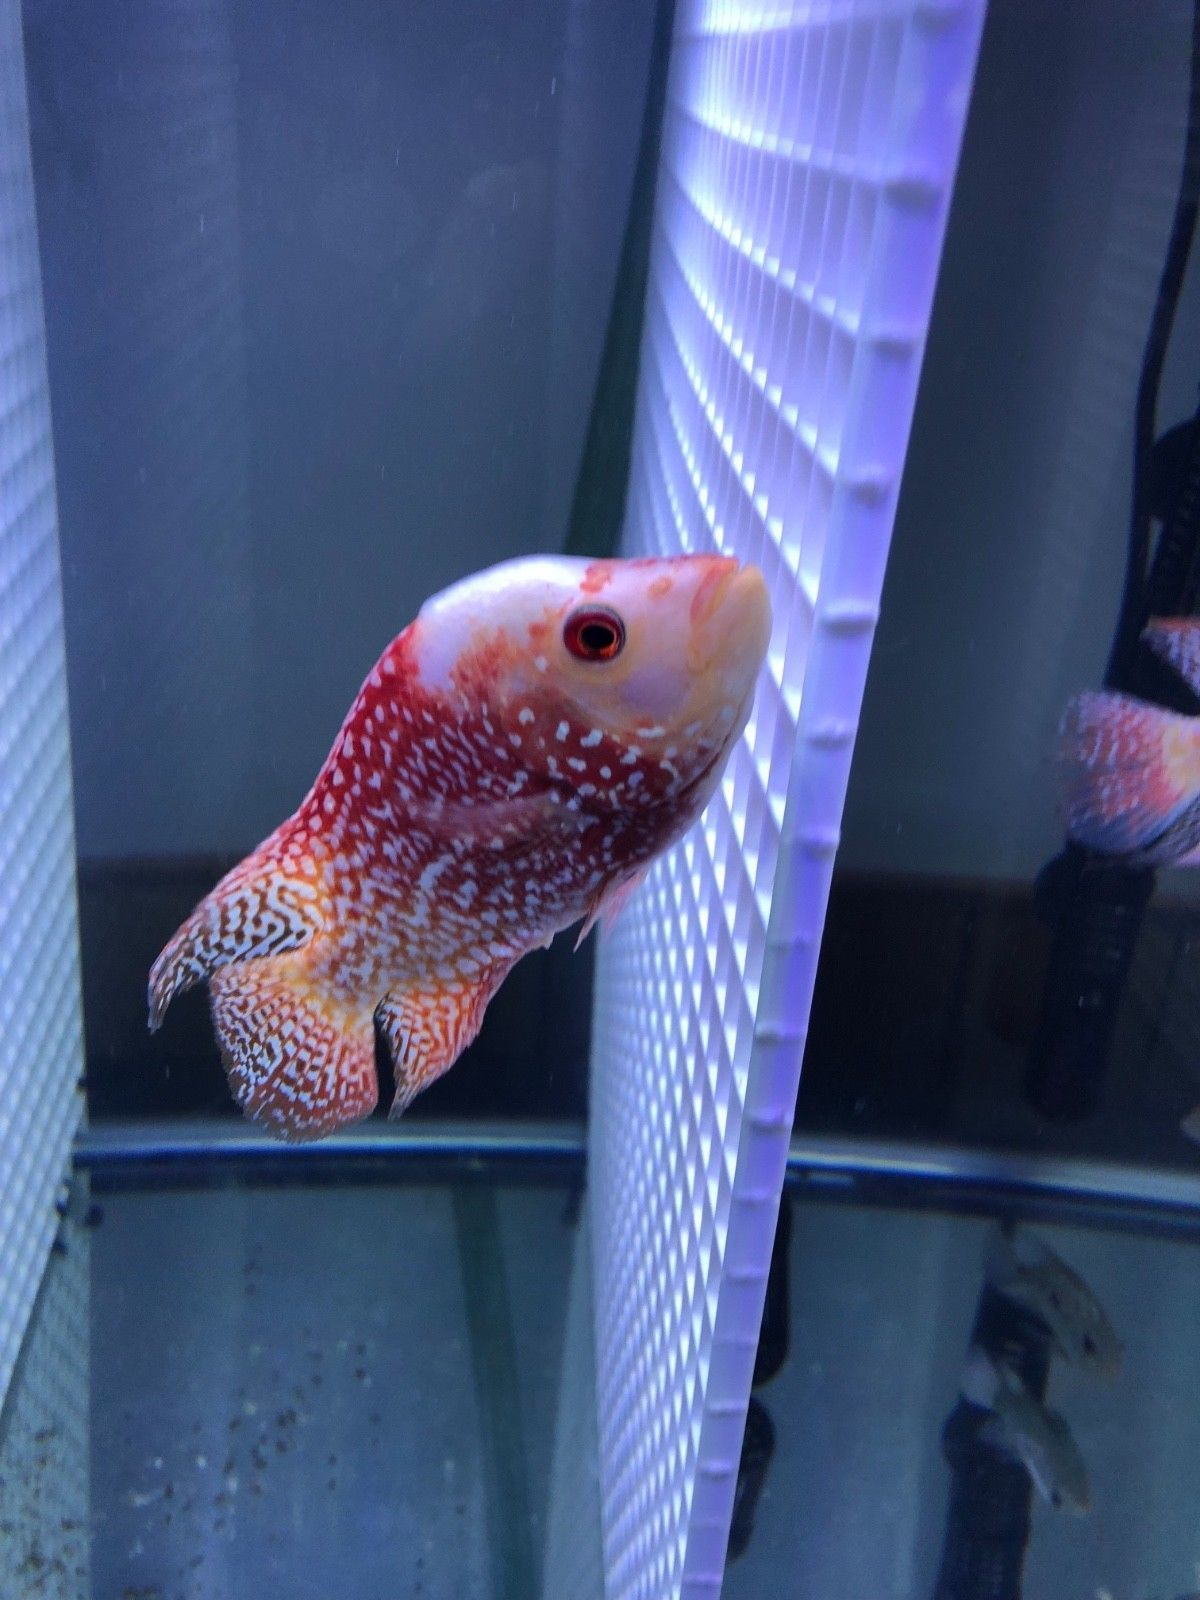 Red Texas Cichlid Fish Flowerhorn 5 Inch 5 Inch Super Red Texas Gold Base Imported From Thailand Ready To Breed động Vật